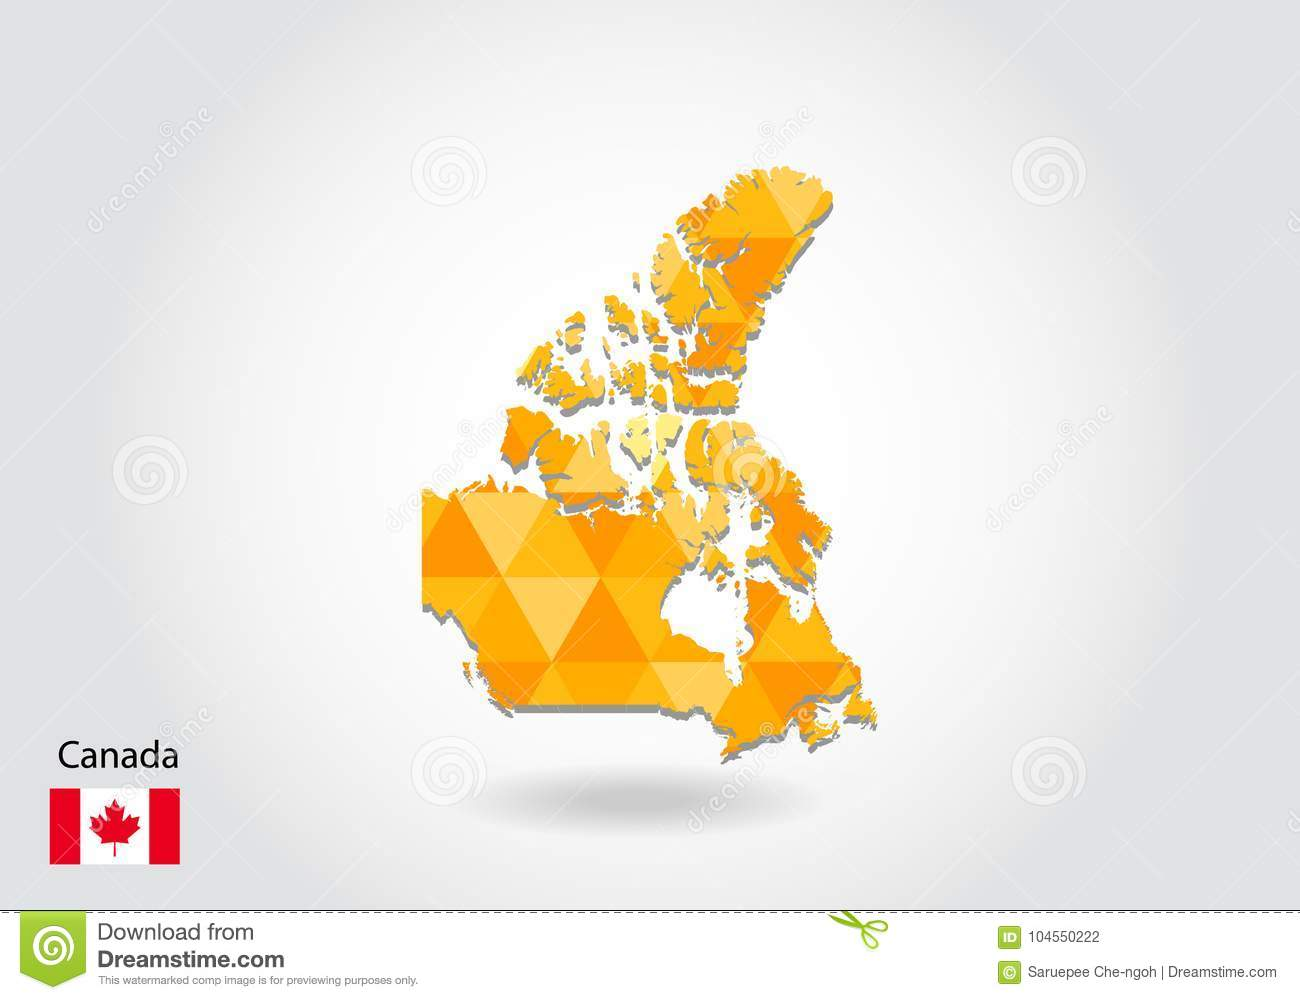 Map Of Canada Eps.Polygonal Vector Map Of Canada Stock Vector Illustration Of Eps8